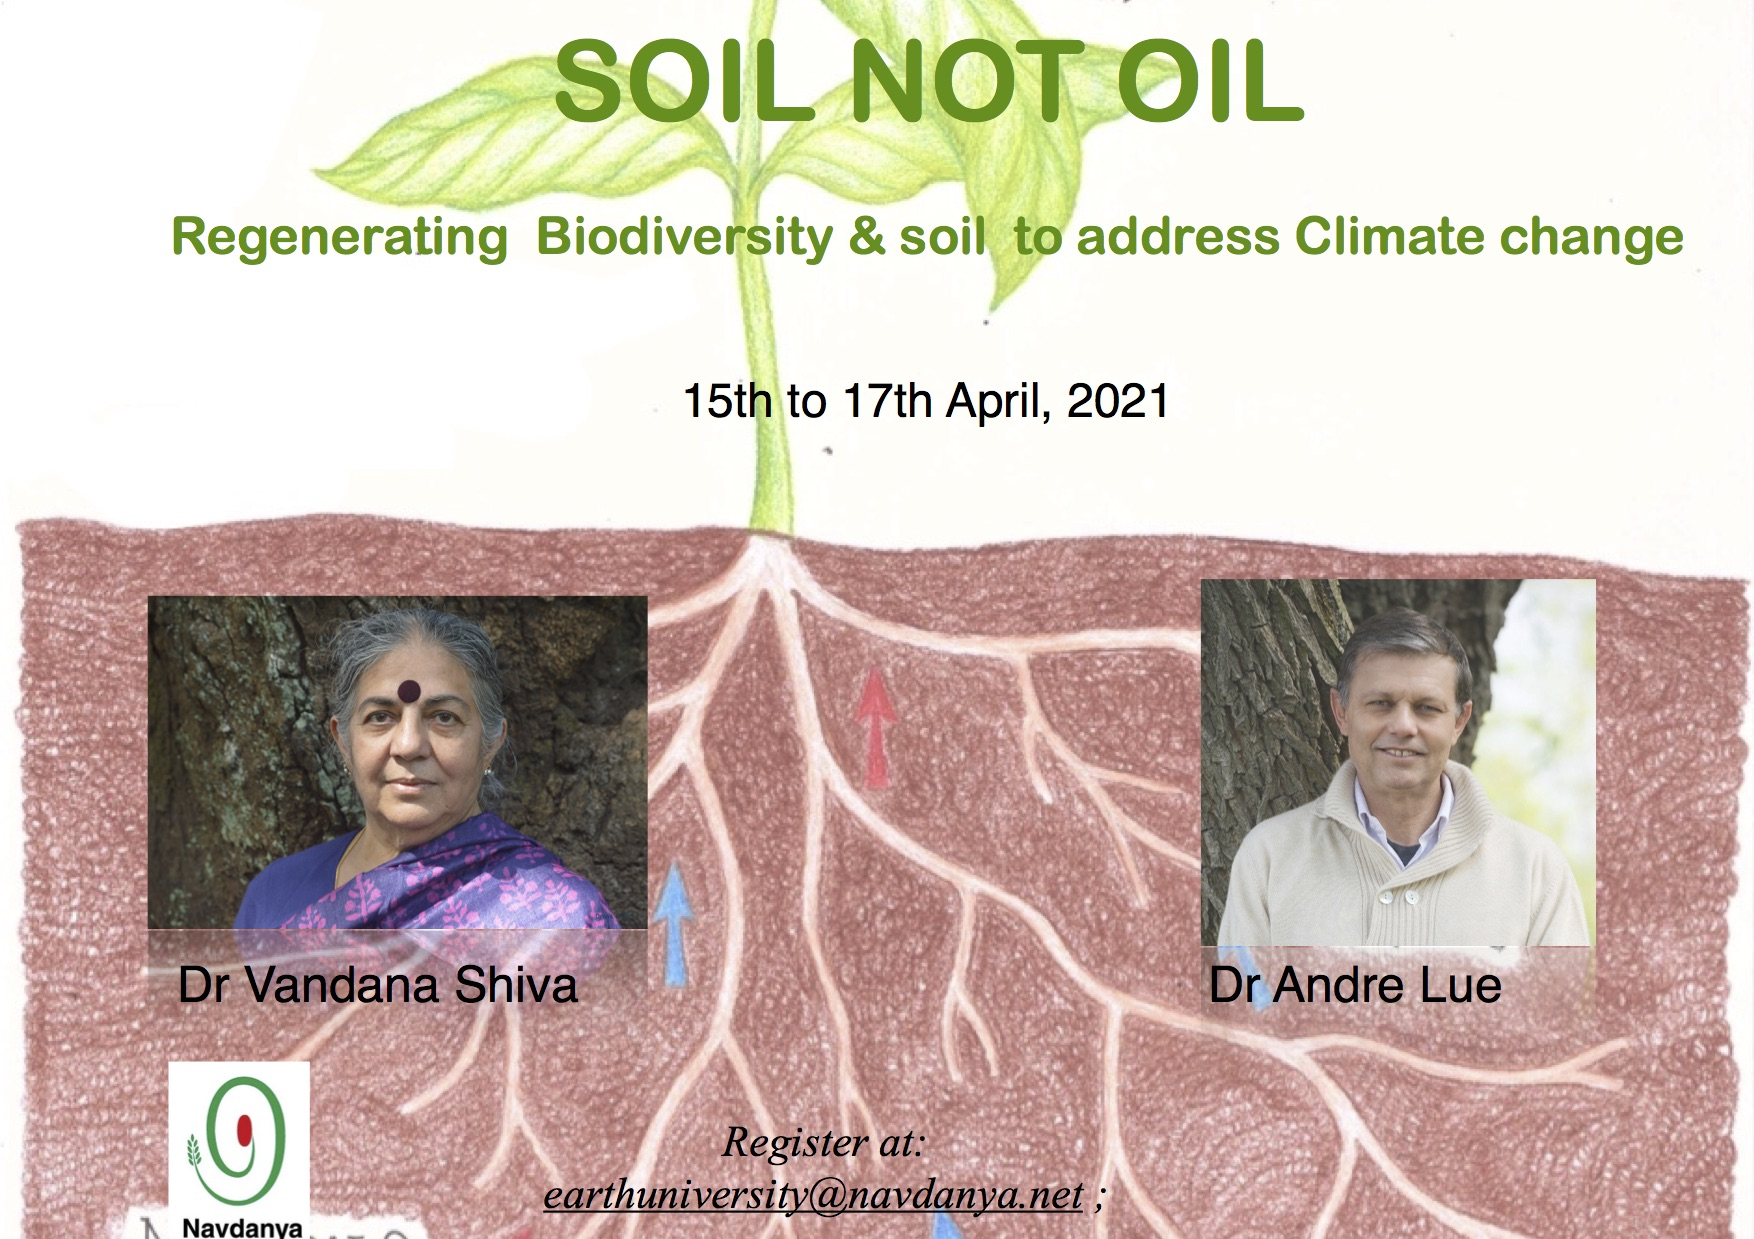 Soil not oil: regenerating Biodiversity and soil to address Climate change